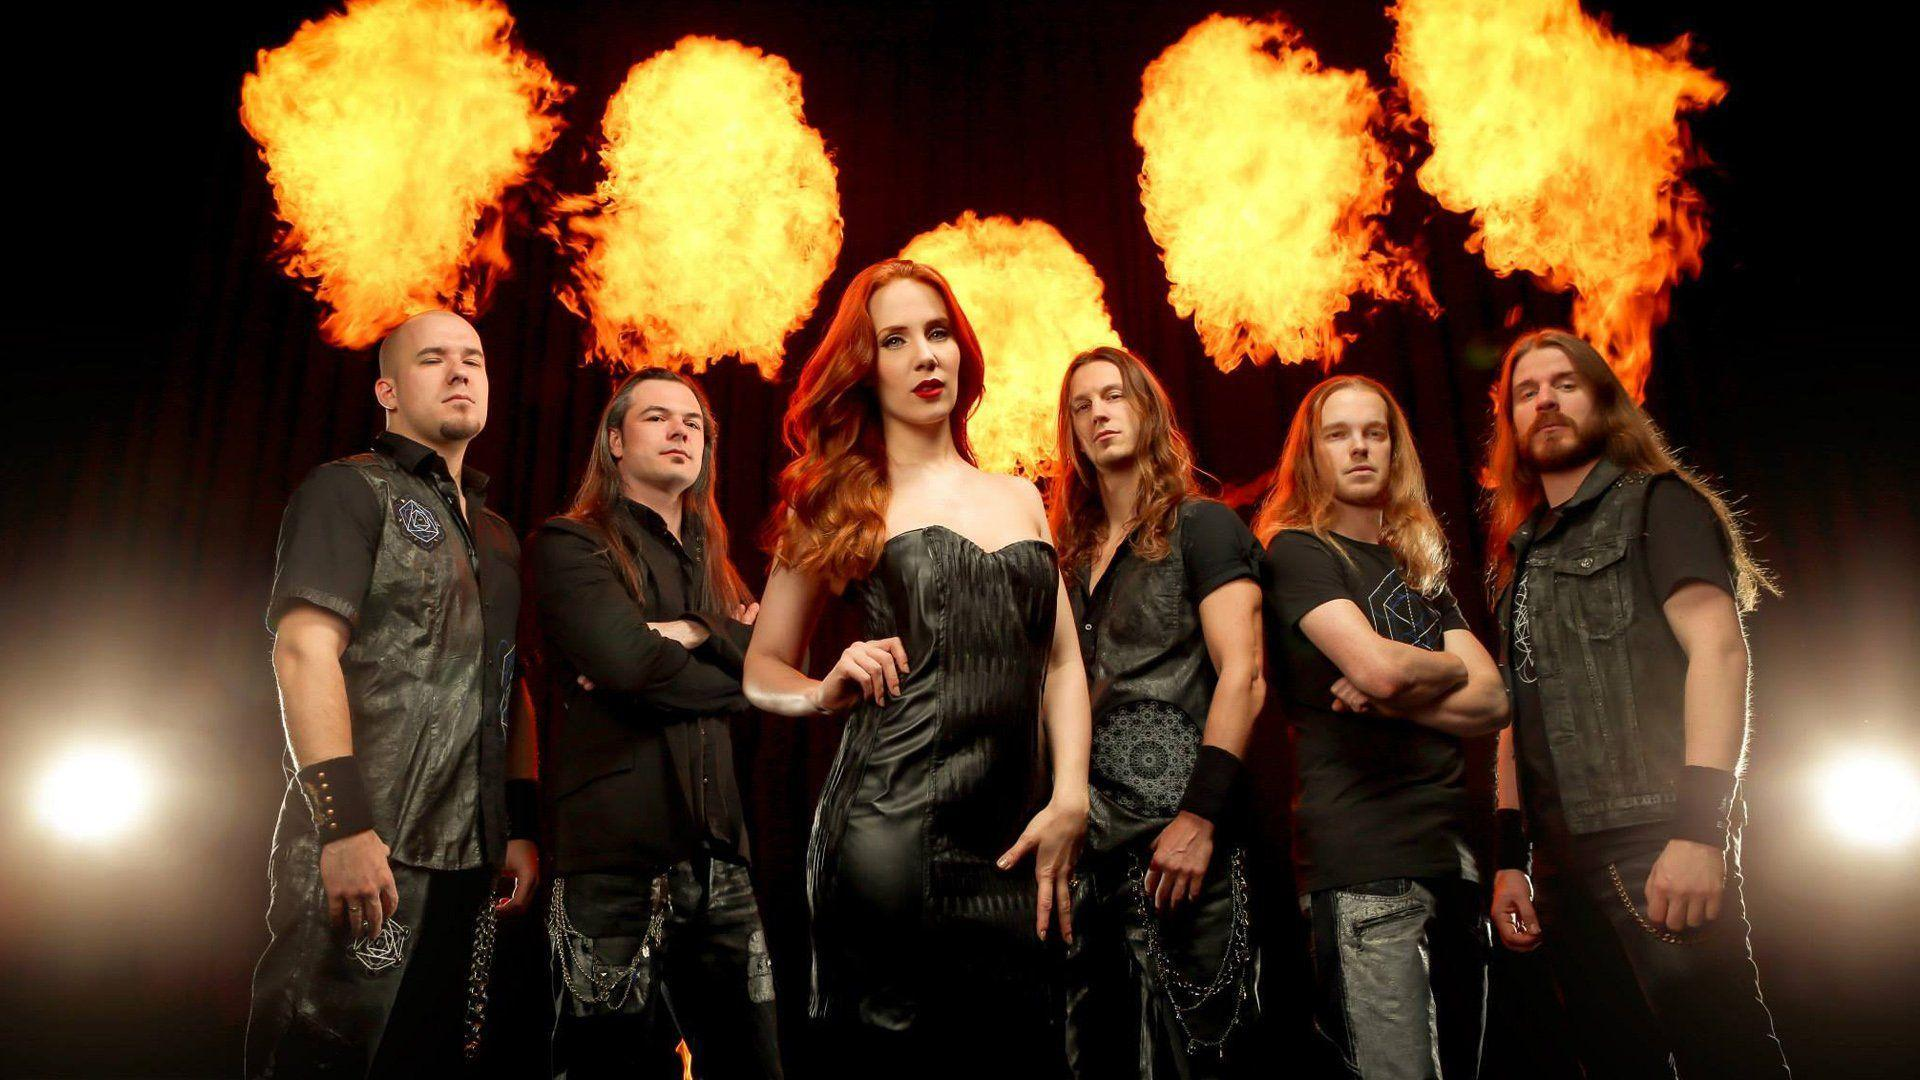 epica wallpapers | WallpaperUP